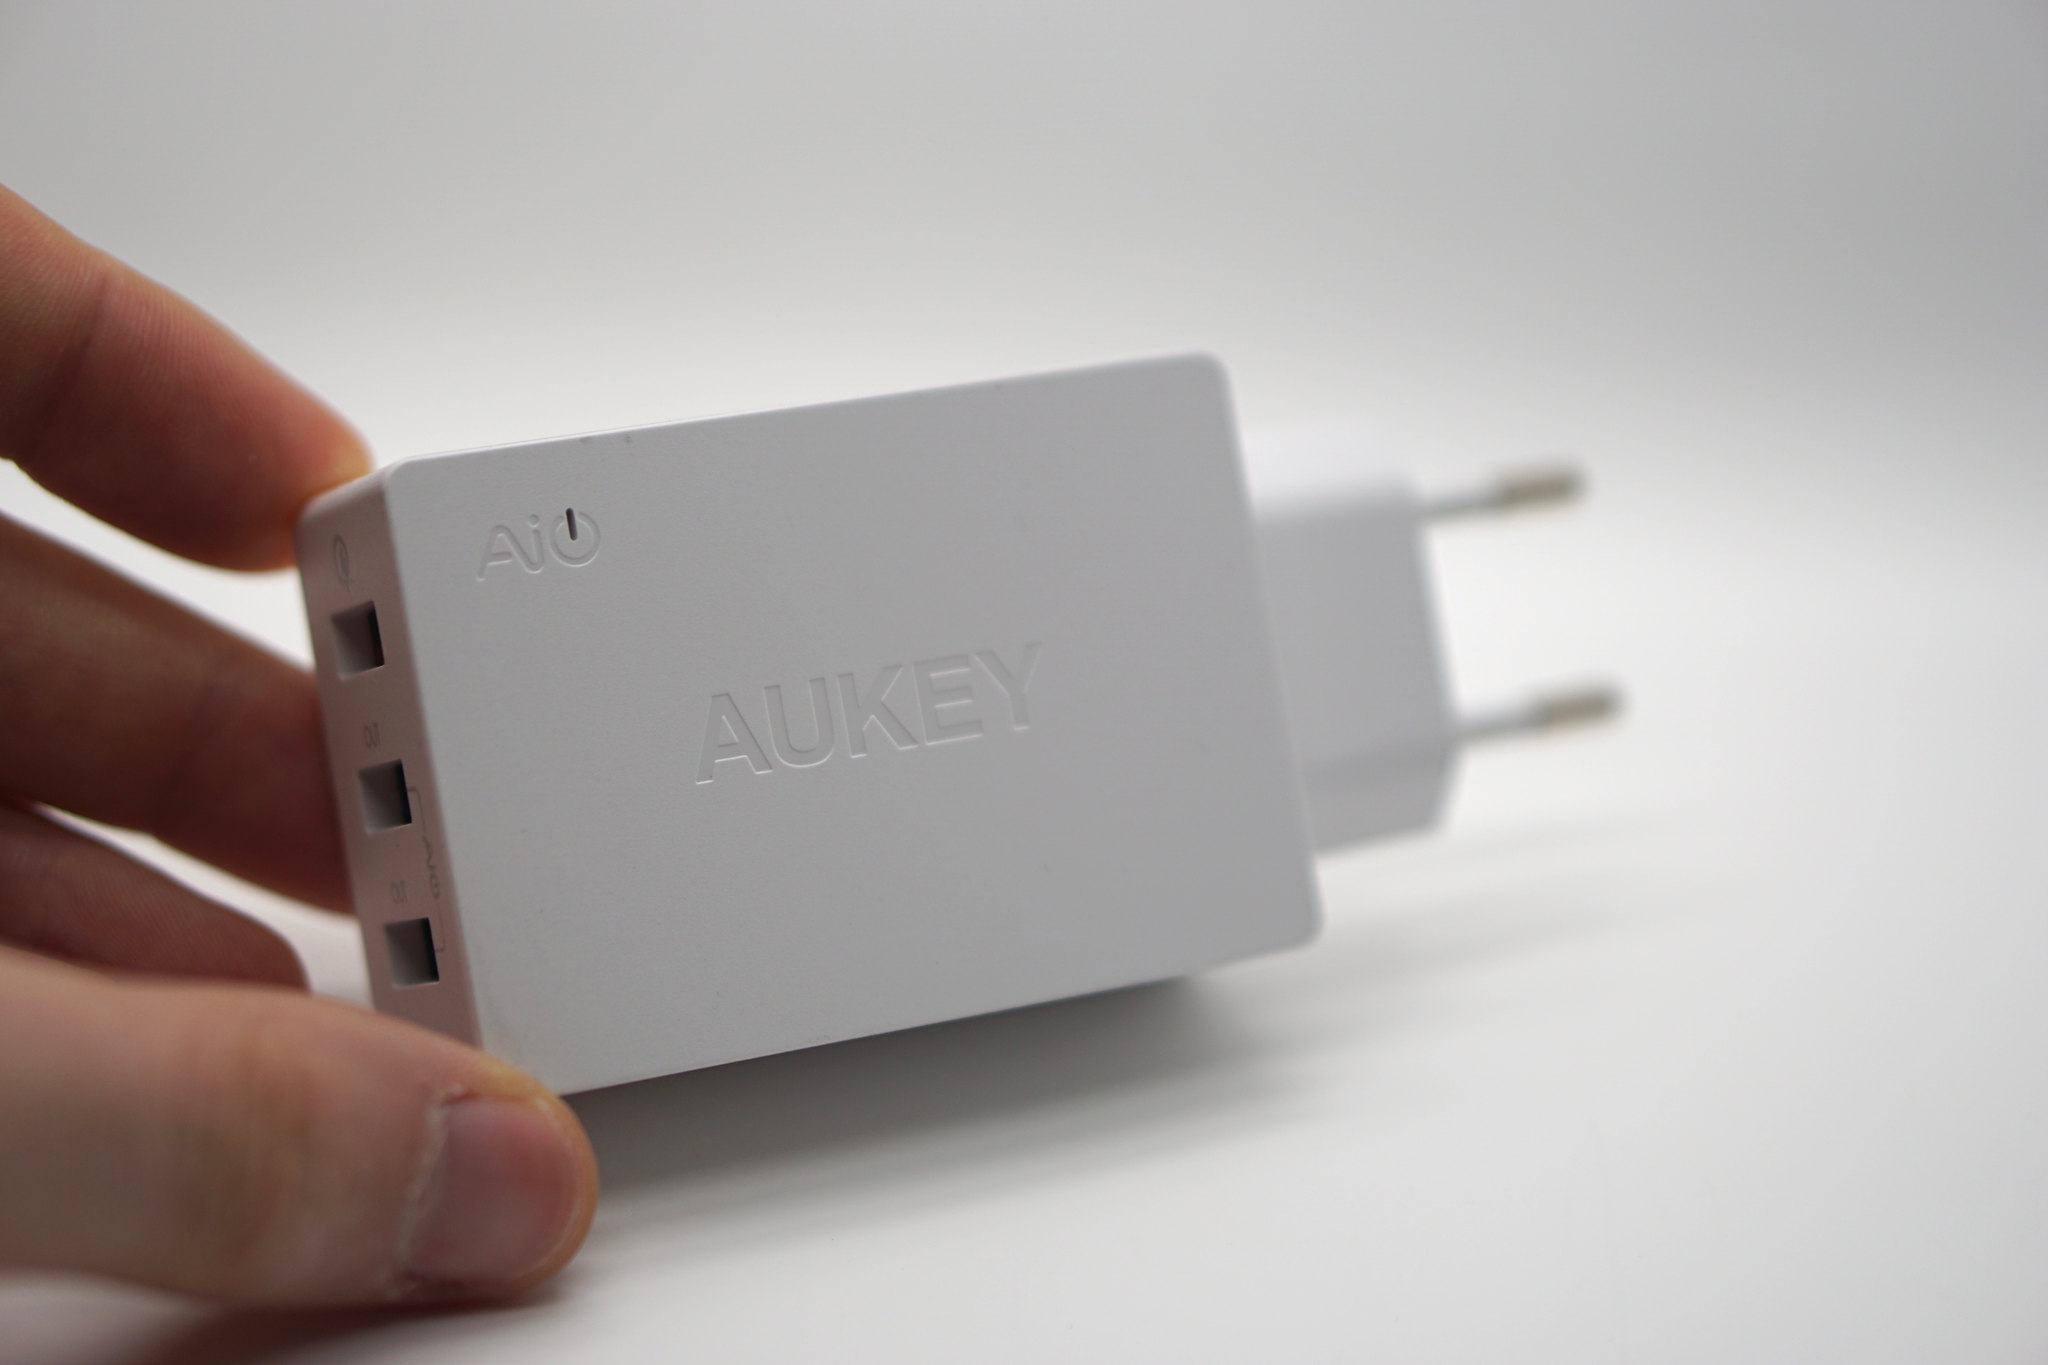 Chargeur USB Aukey 3 ports